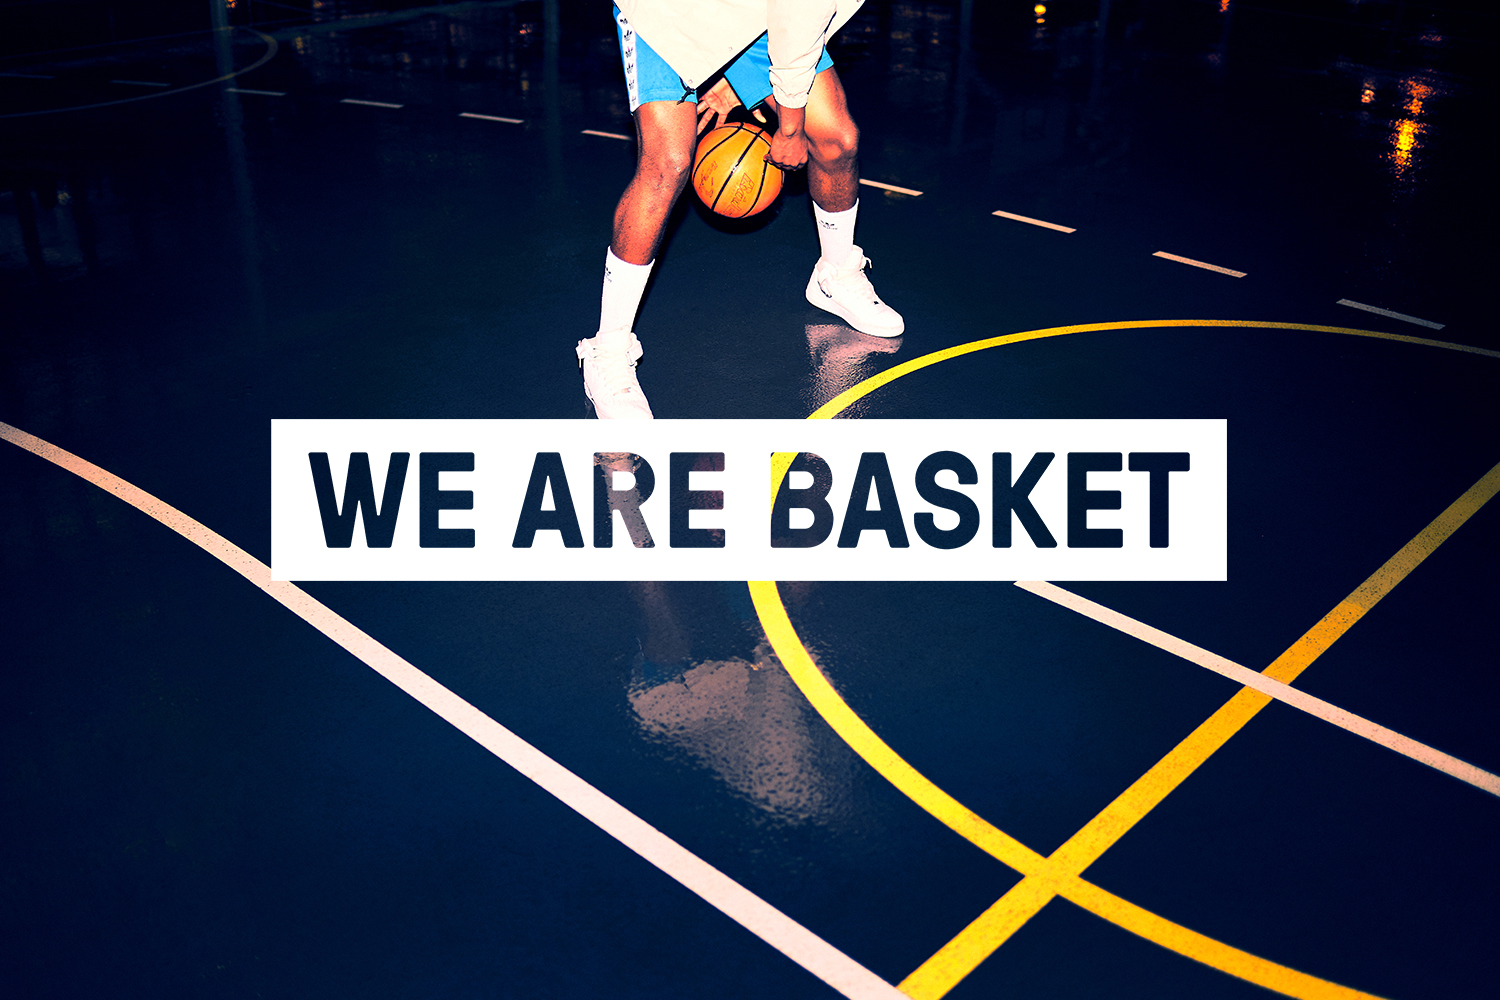 We Are Basket